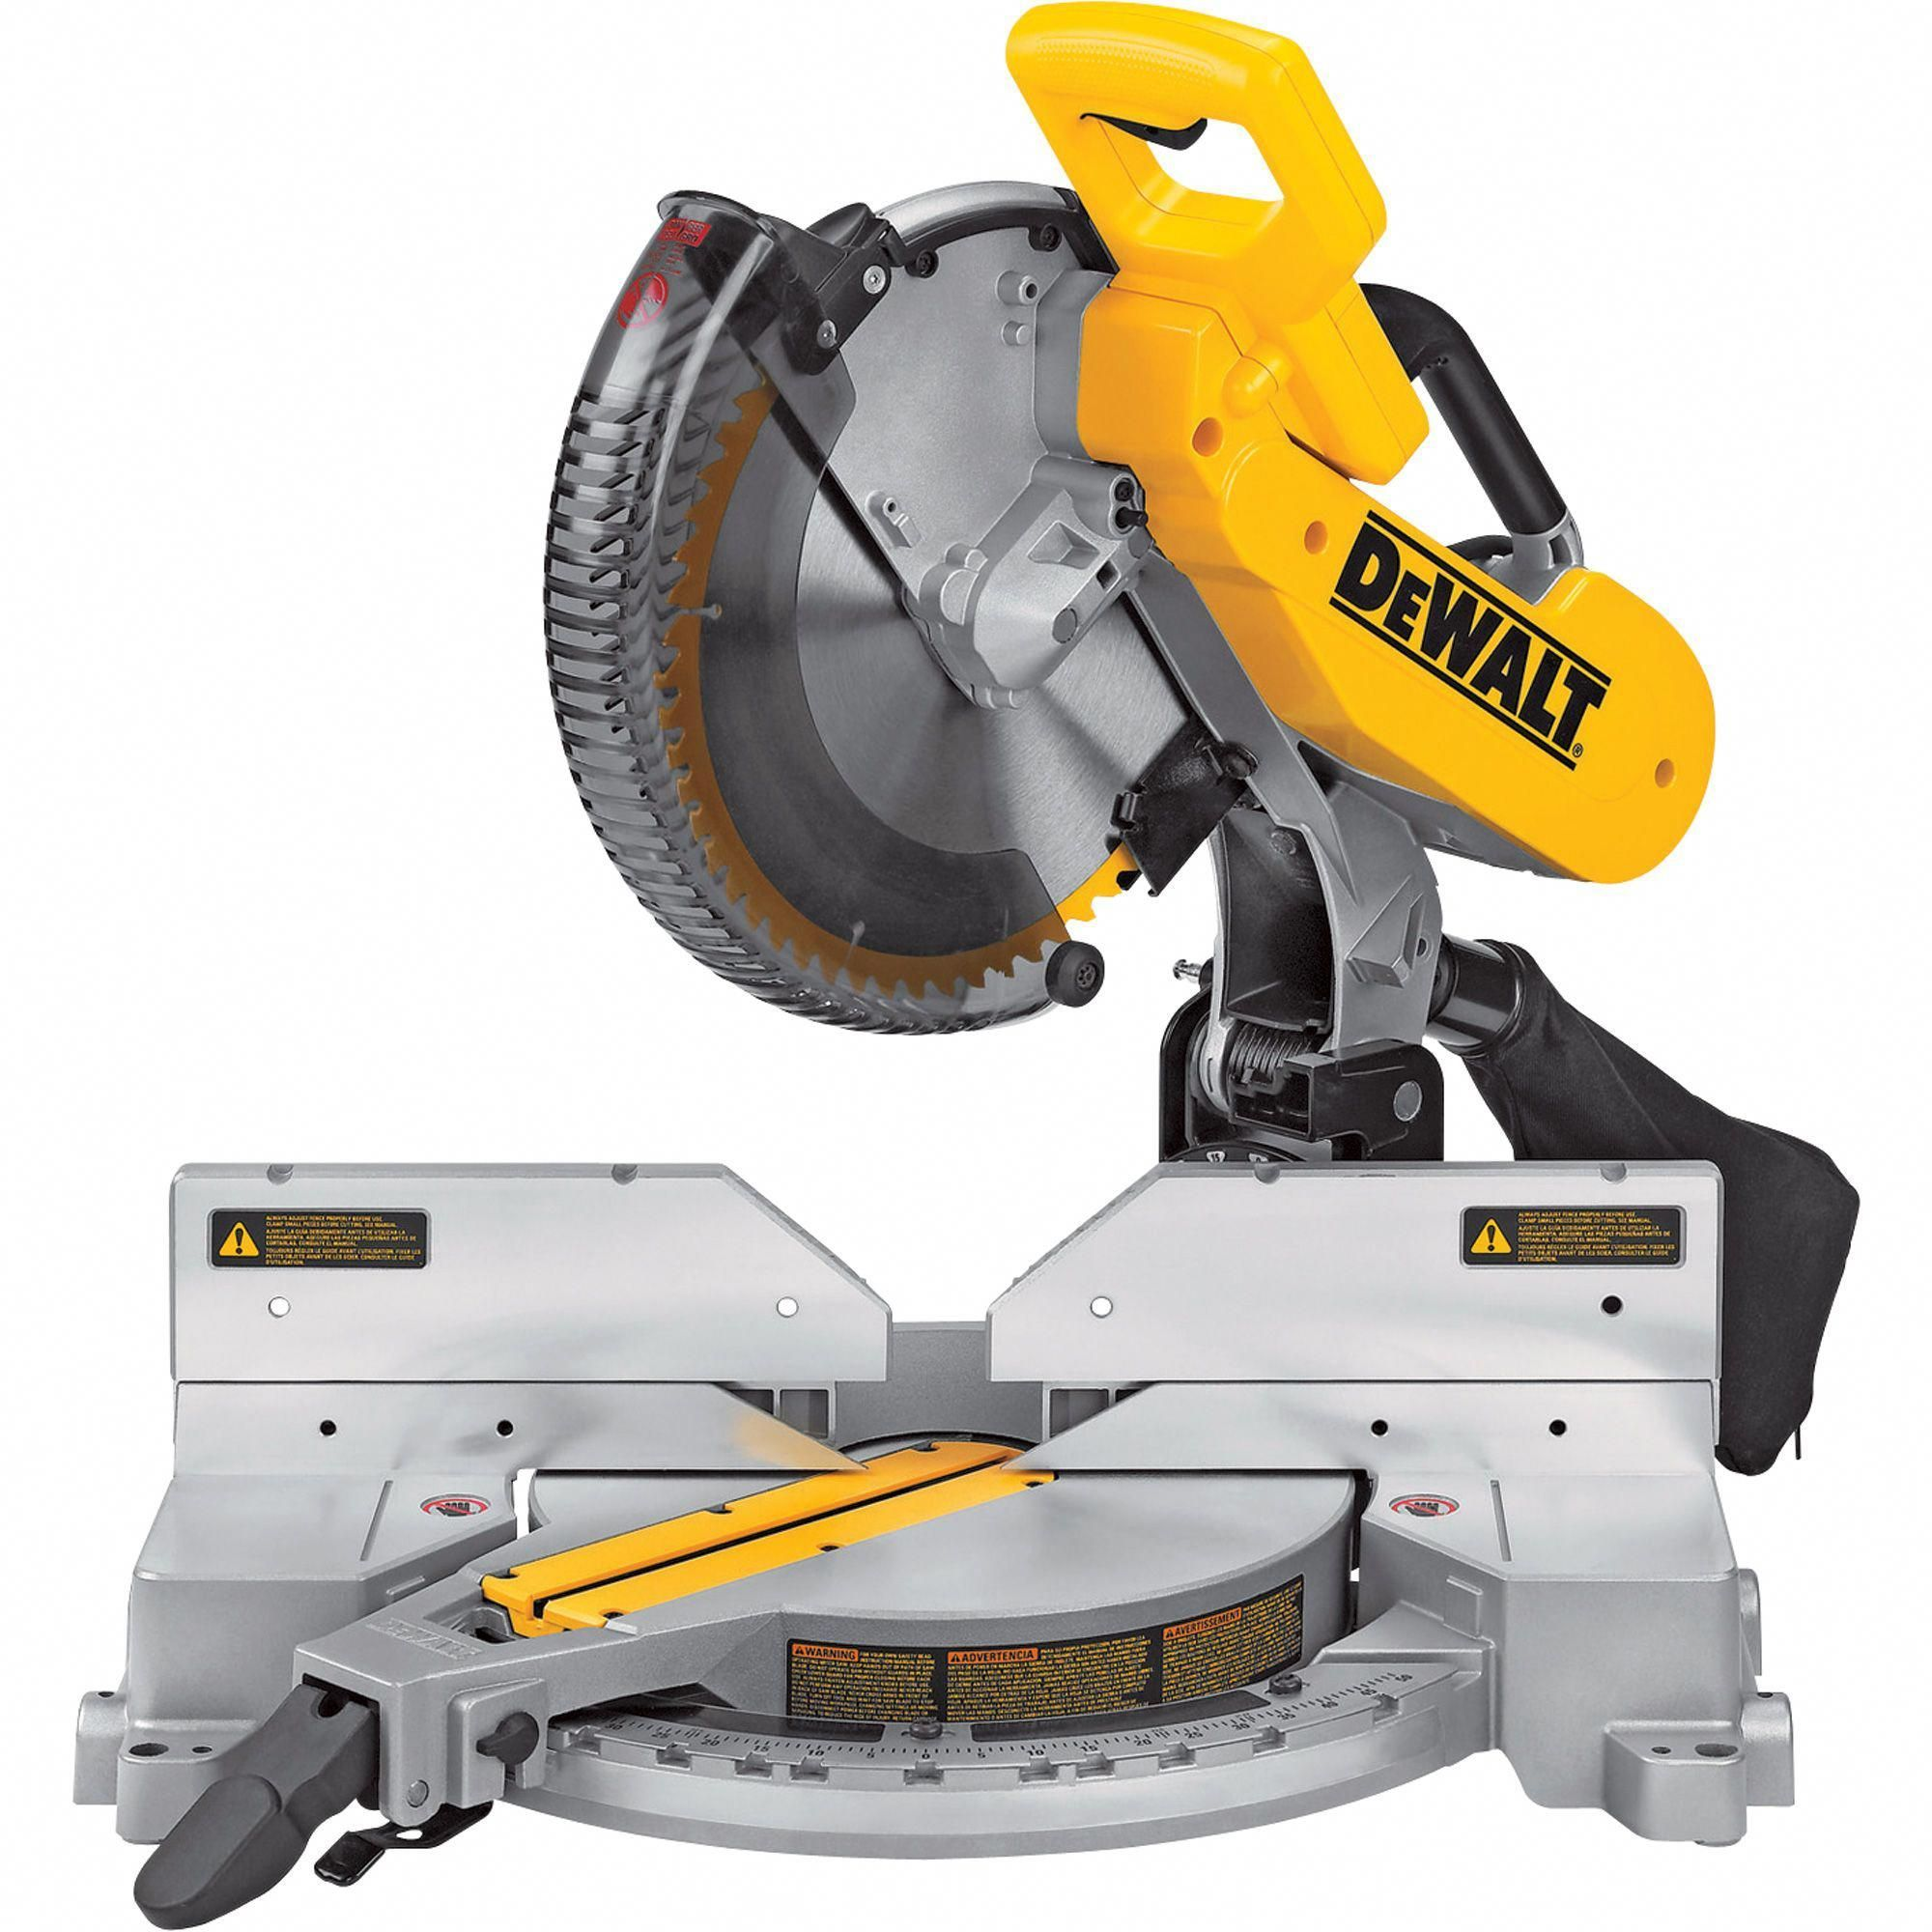 Free Shipping Dewalt Double Bevel Compound Miter Saw 12in 15 Amps Model Dw716 Miter Saws Northern Too Miter Saw Table Saw Sliding Compound Miter Saw